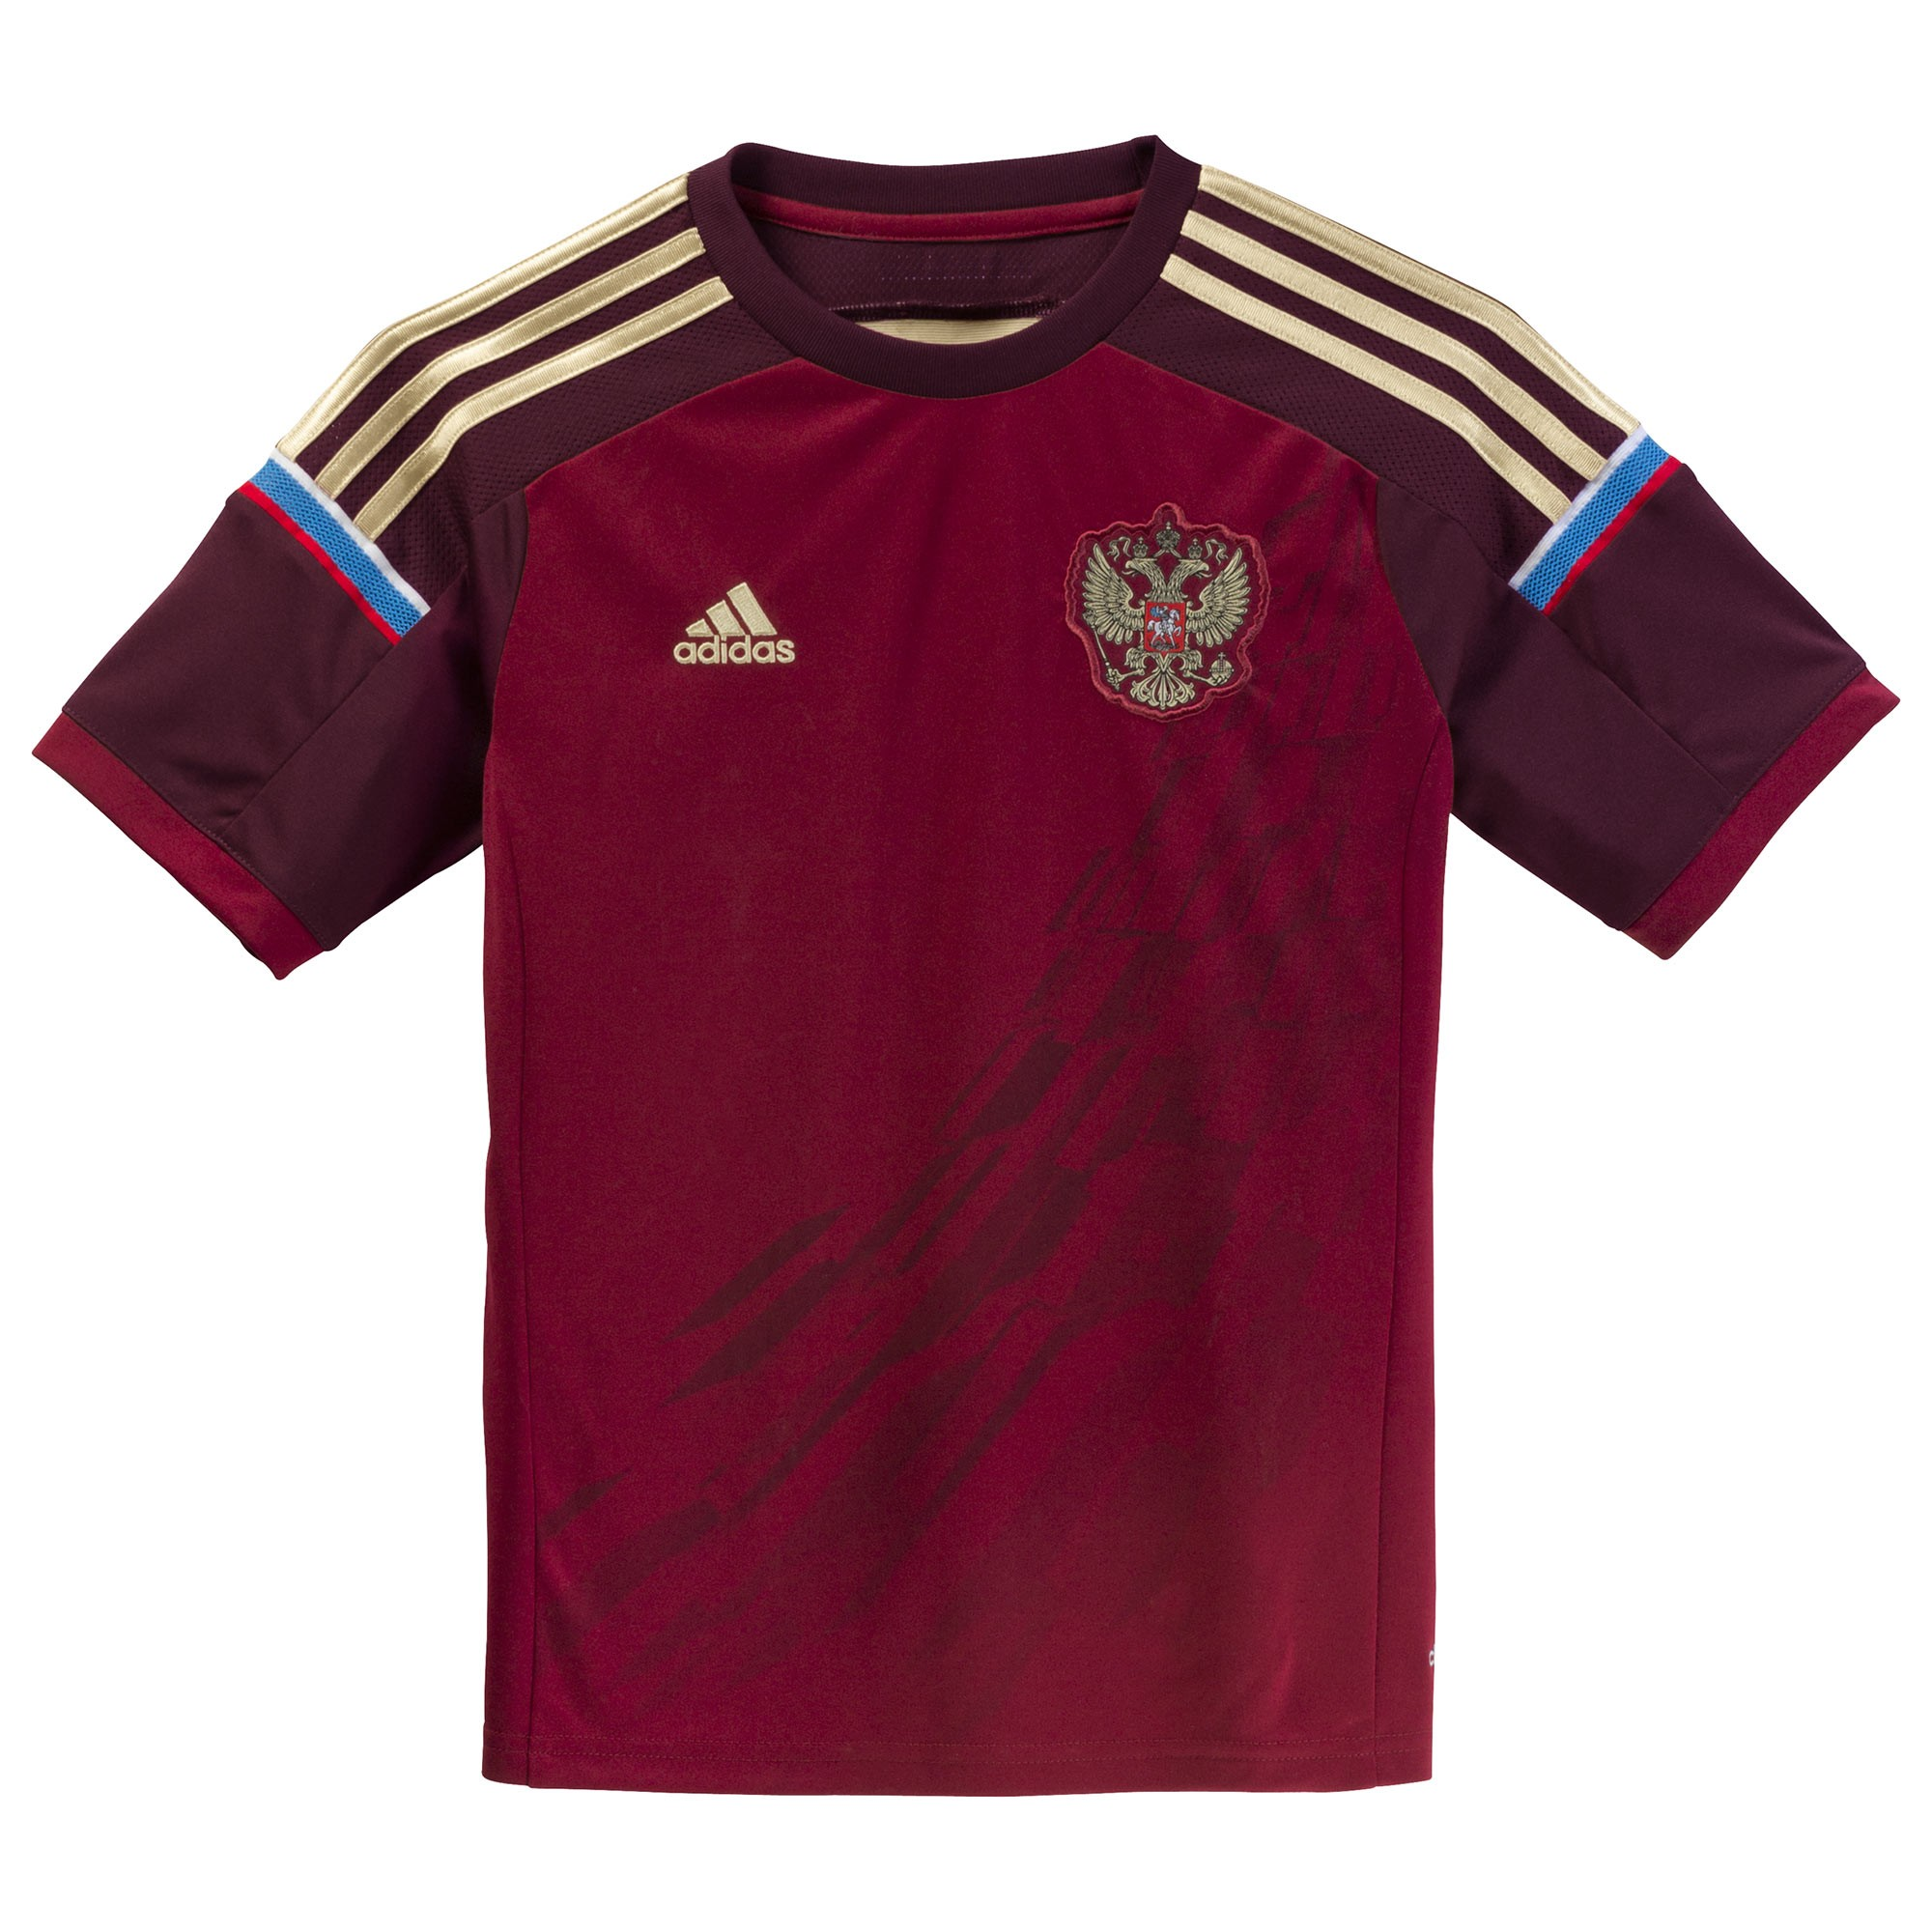 Russia 2014 Brazil World Cup